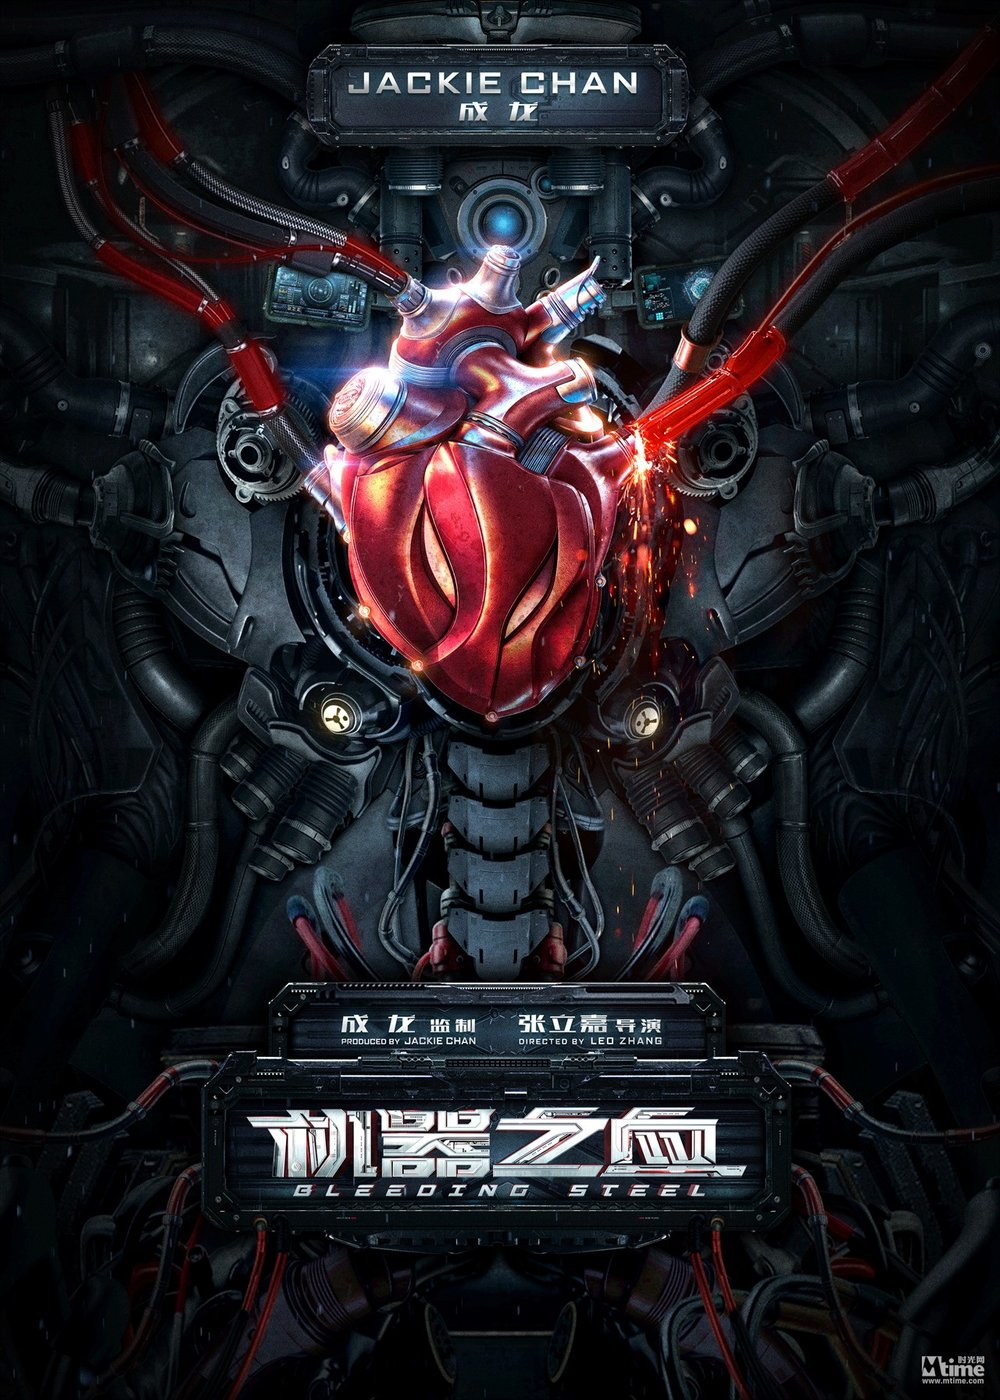 awesome-trailer-for-jackie-chans-new-sci-fi-action-film-bleeding-steel2